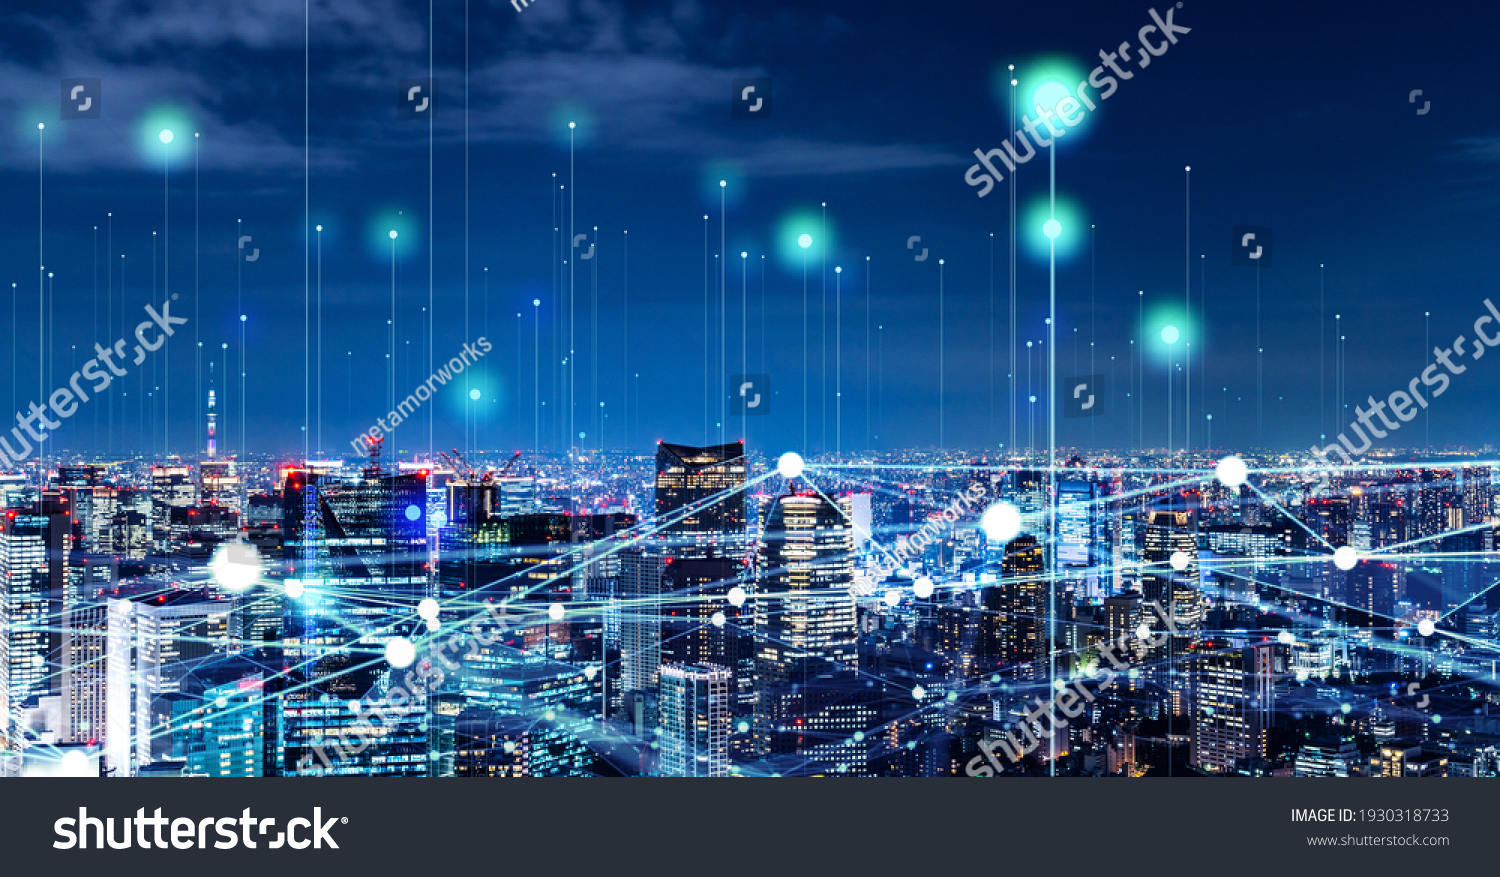 Modern cityscape and communication network concept. Telecommunication. IoT (Internet of Things). ICT (Information communication Technology). 5G. Smart city. Digital transformation. #1930318733